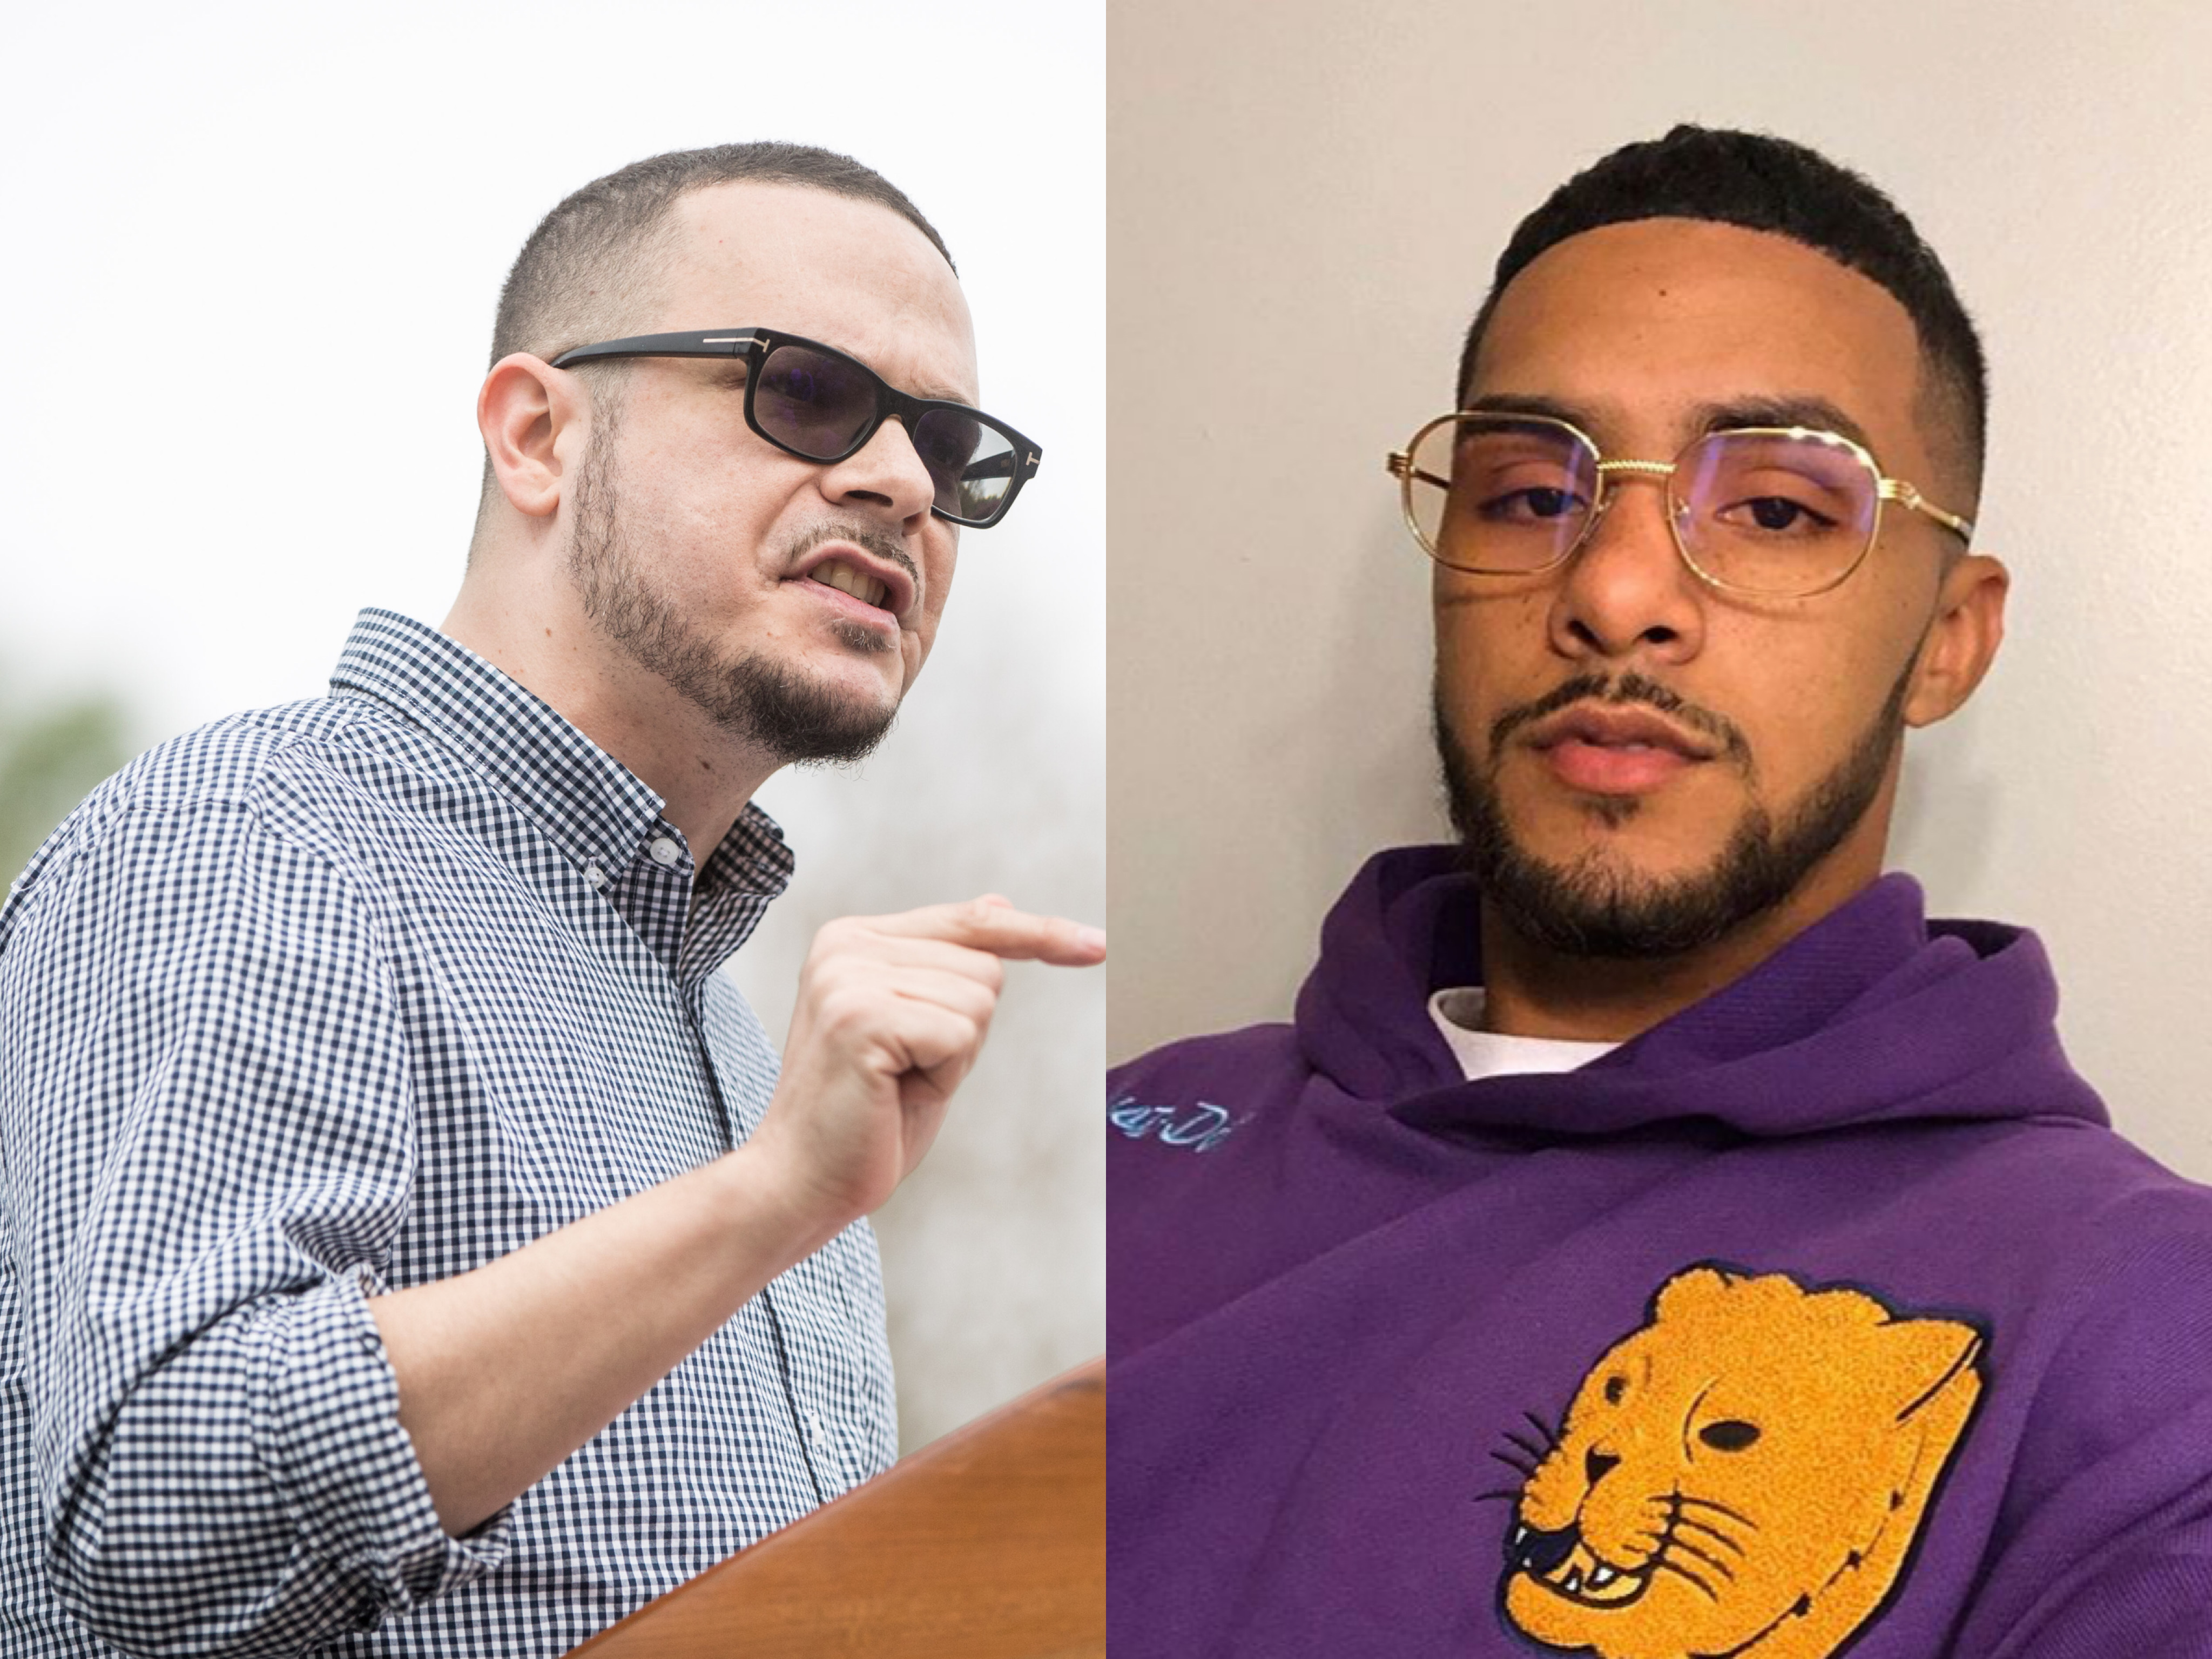 Shaun King lent his support and offered to help after video showed Brother Nature getting jumped in Miami, however Black Twitter wasn't here for it.